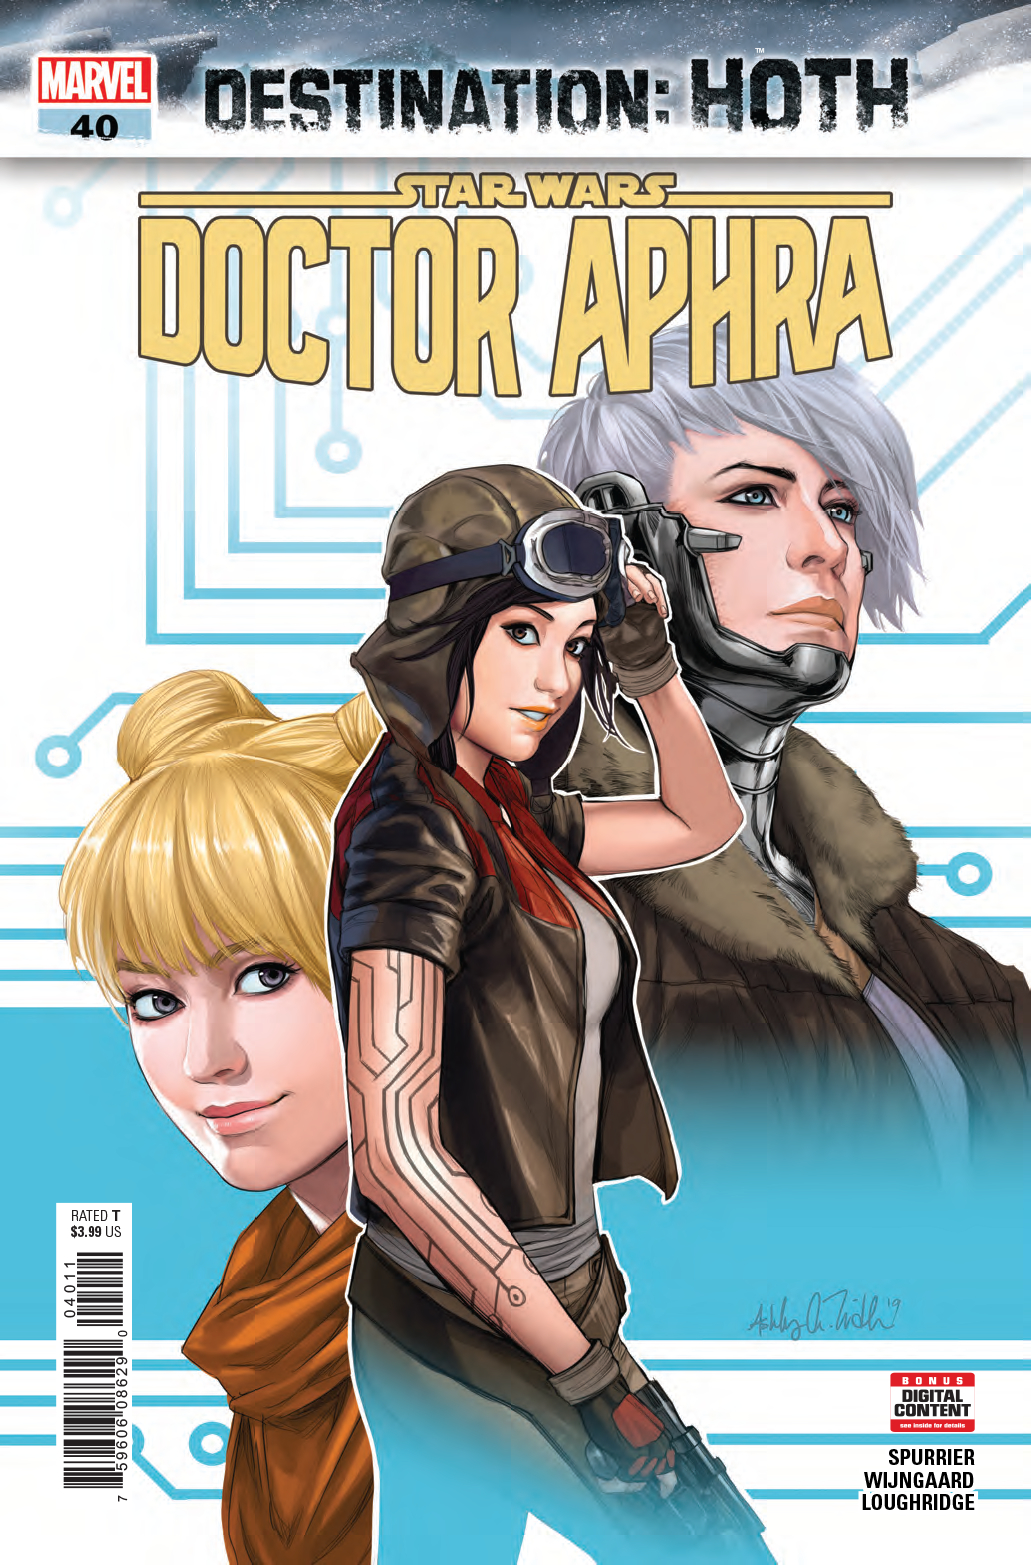 STAR WARS DOCTOR APHRA #40